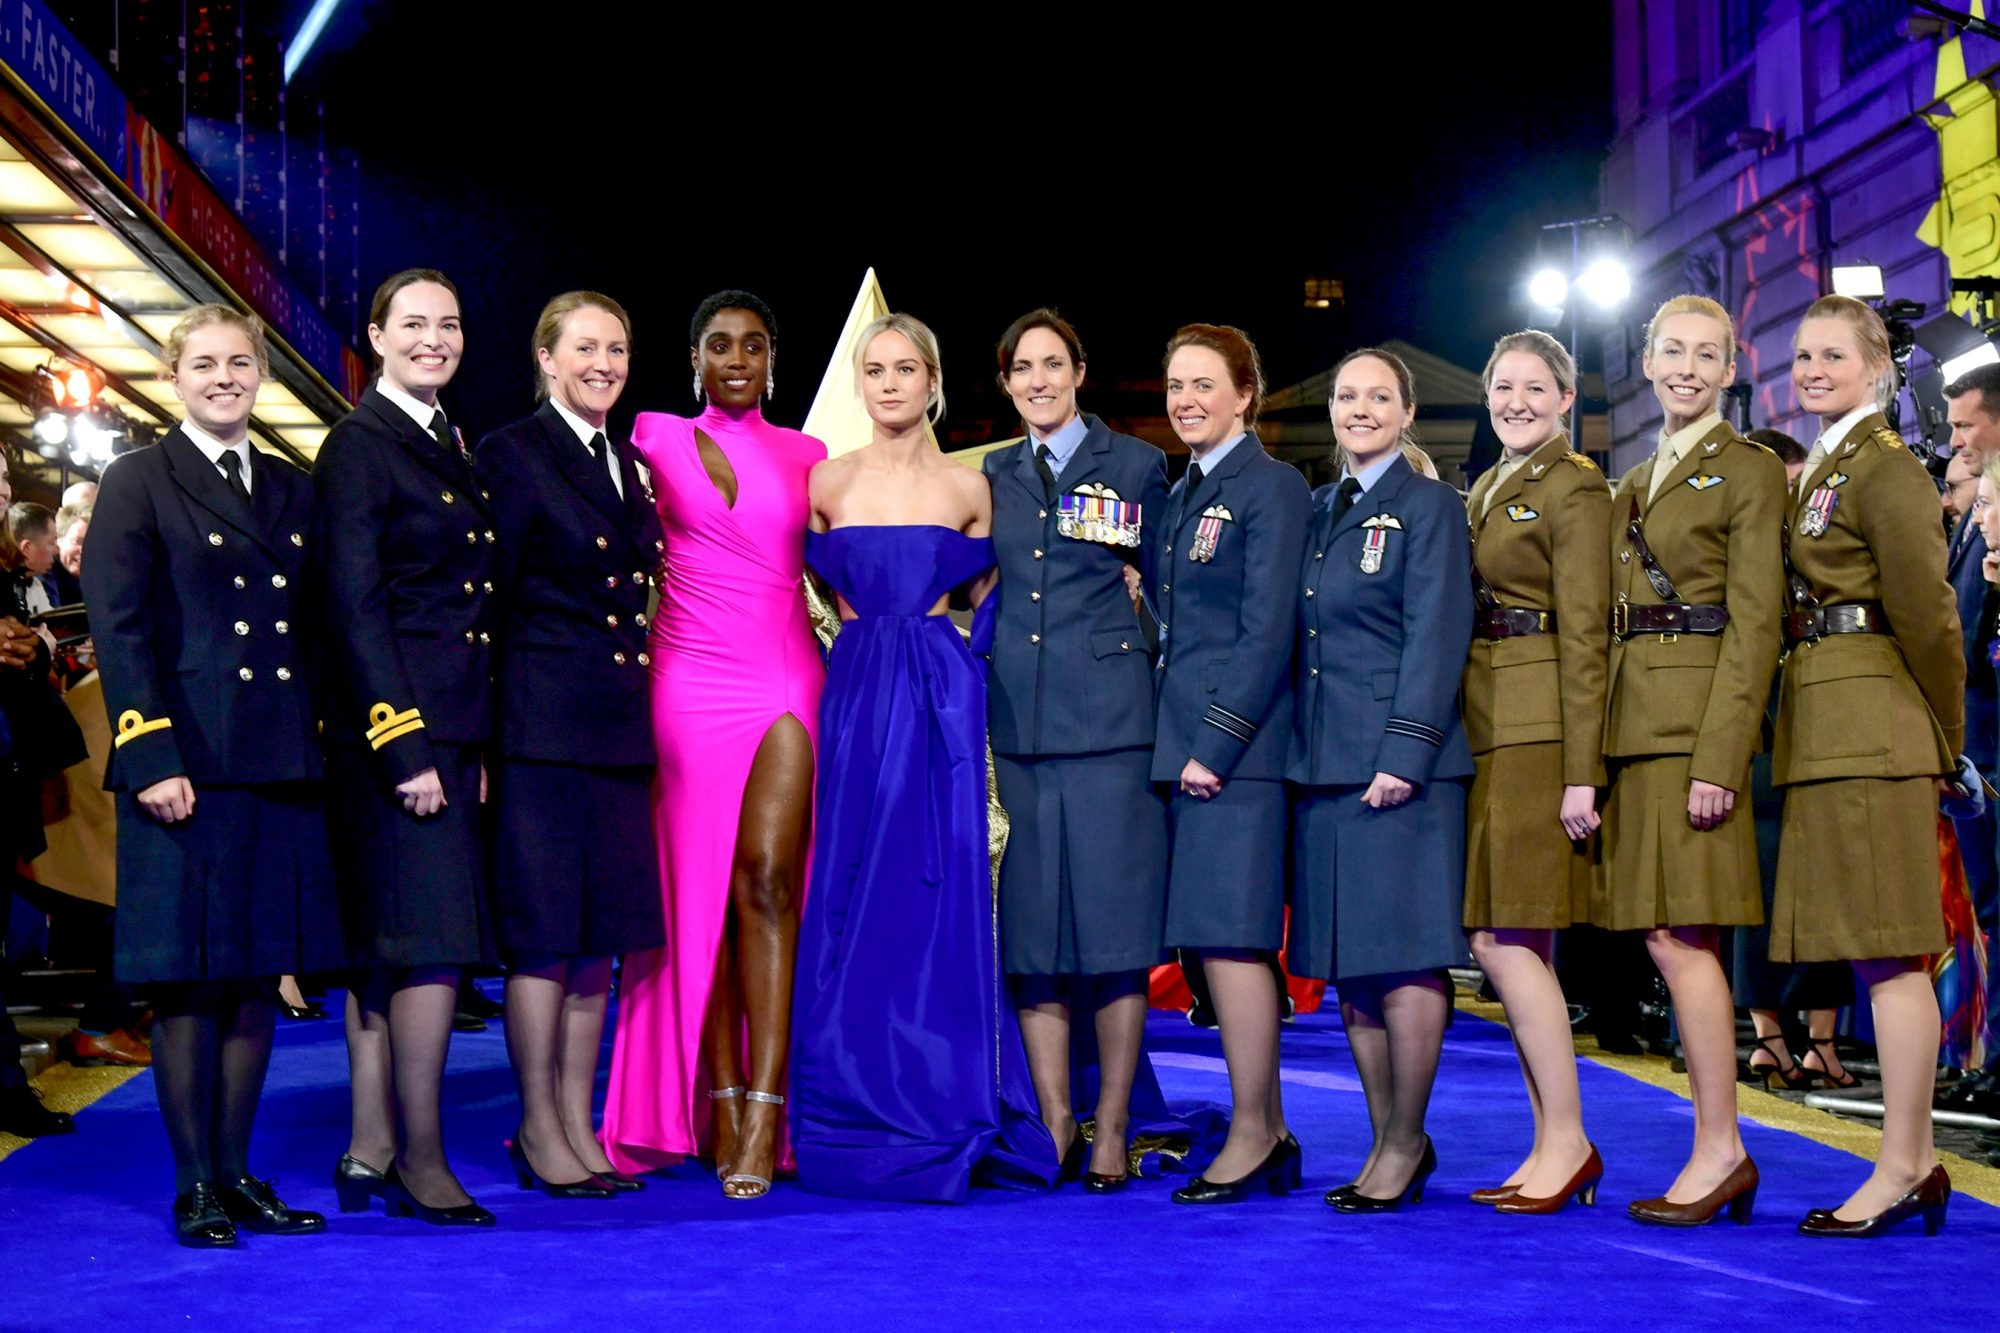 Brie Larson and Lashana Lynch pose with women from the British Armed Forces